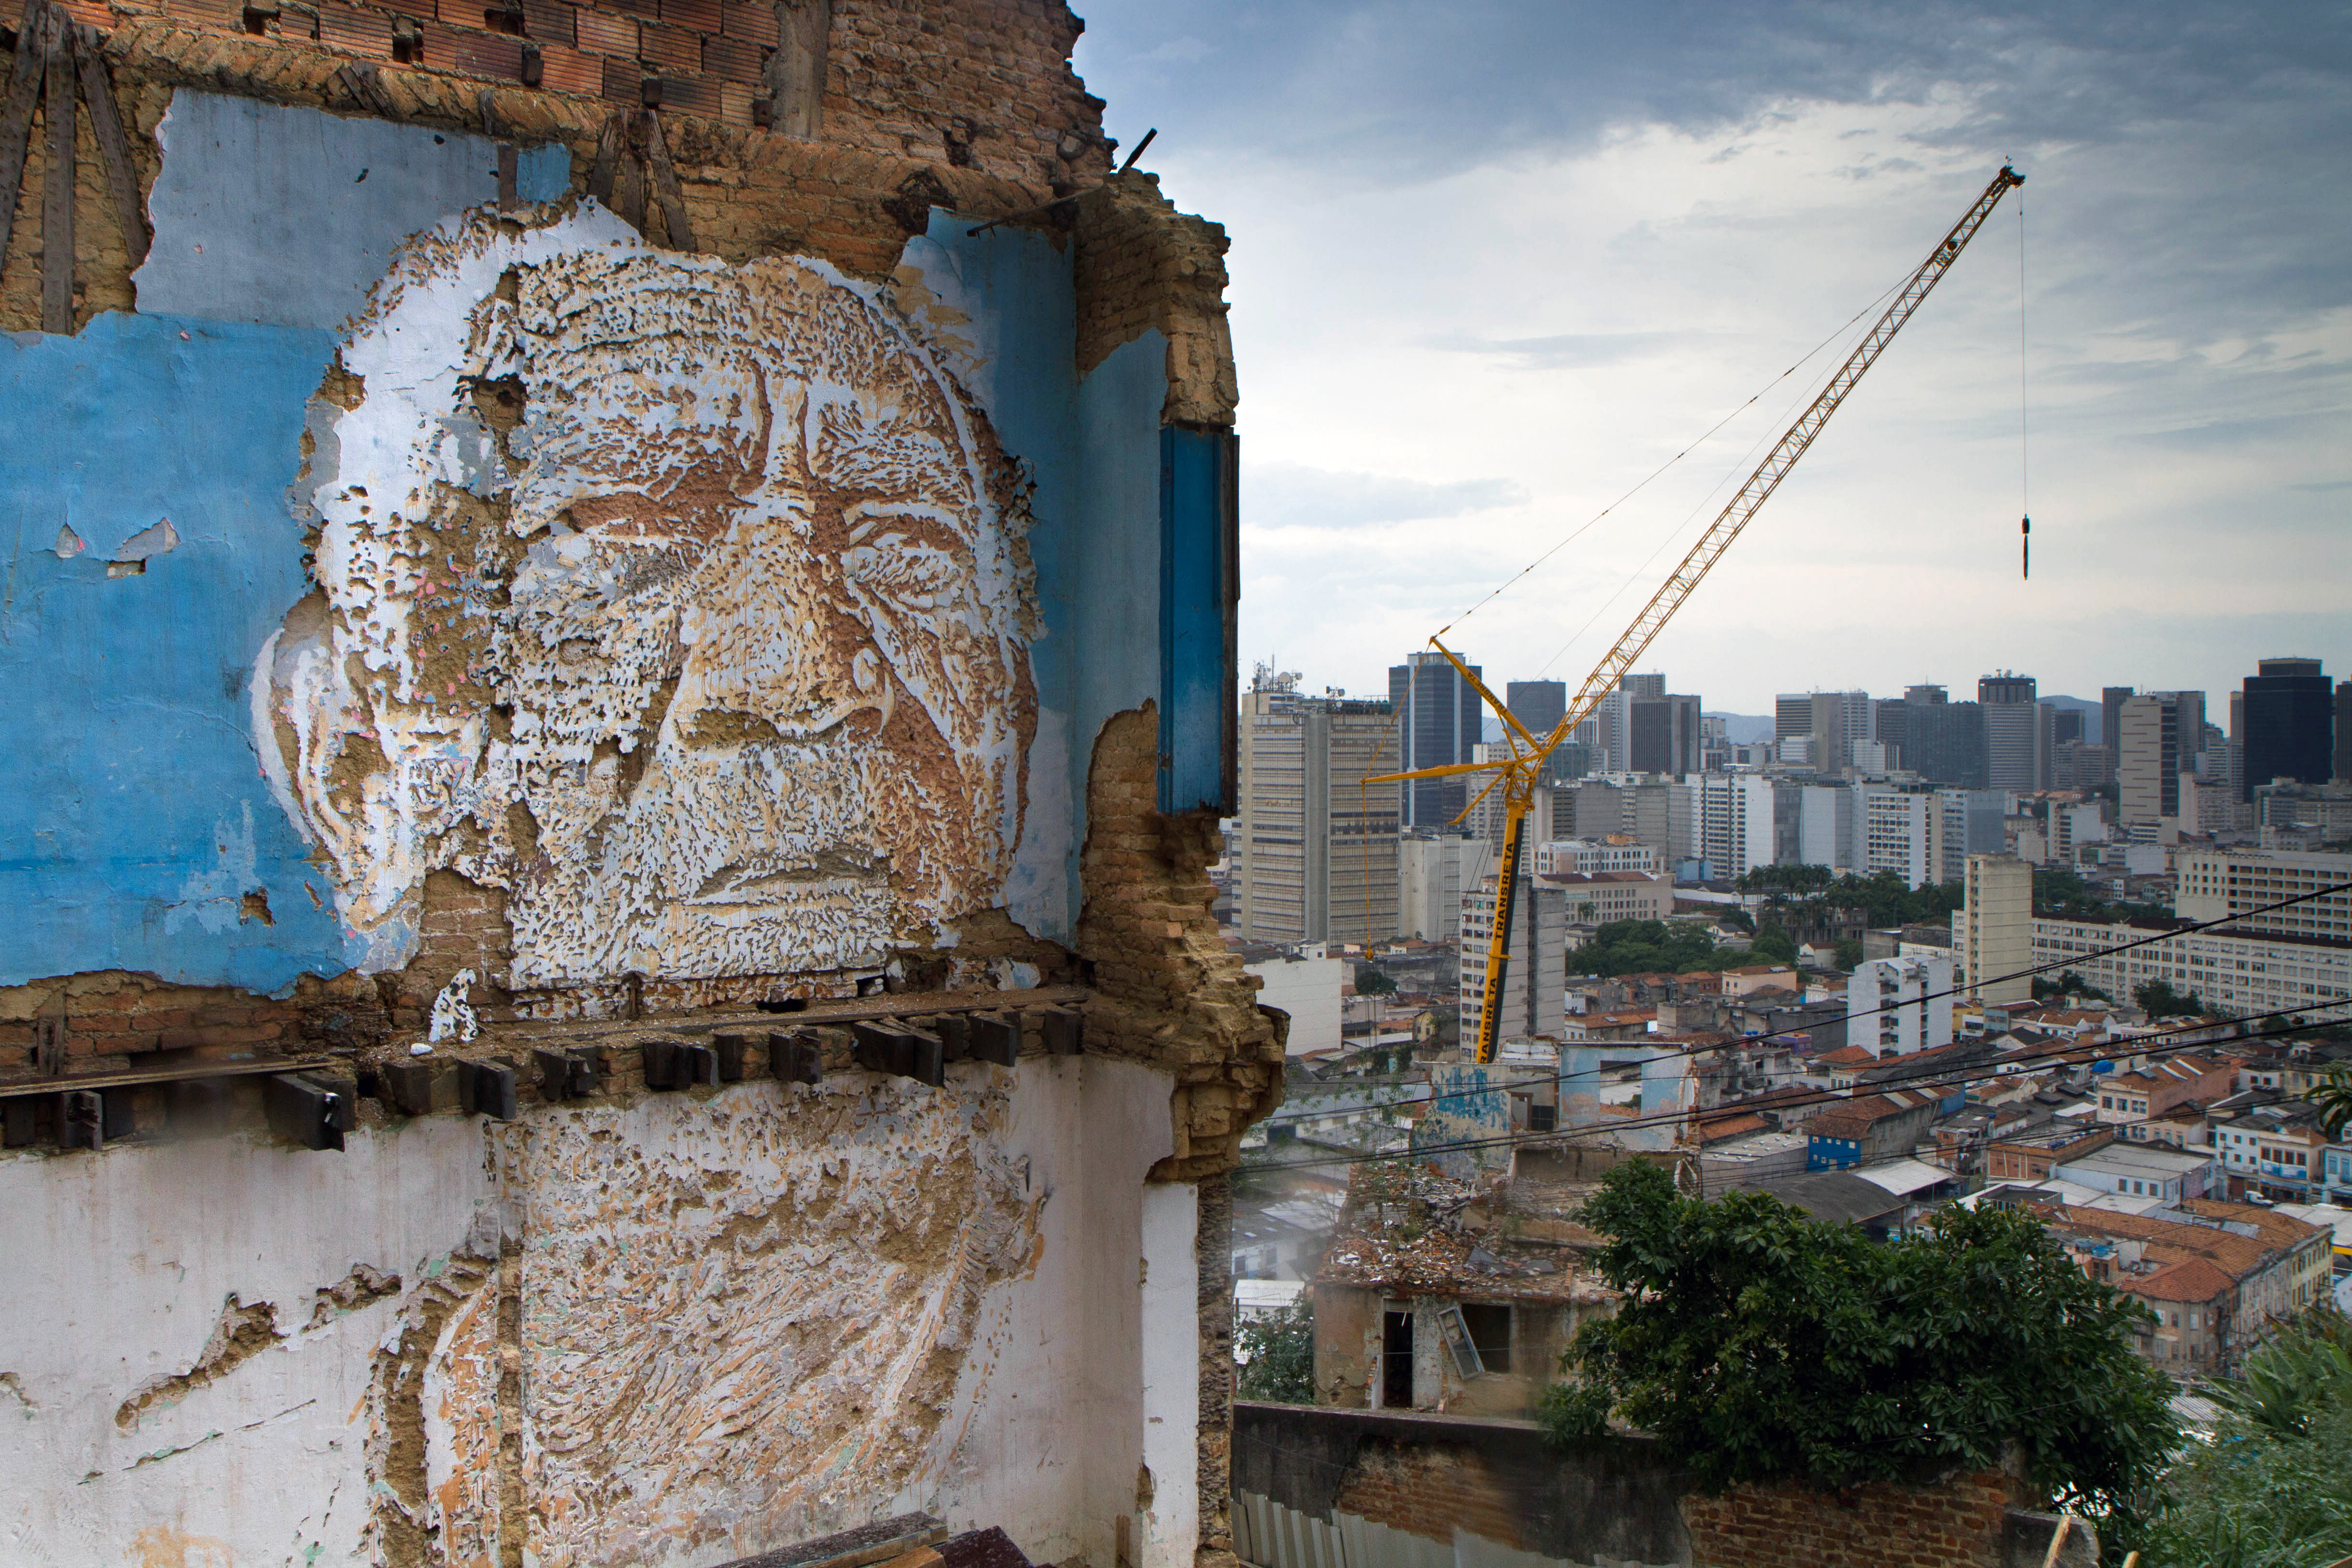 The artwork of Portuguese artist Alexandre Farto aka Vhils decorates the walls with faces that represent the people who live in Providencia, the oldest slum in Rio de Janeiro, Nov. 29, 2012.